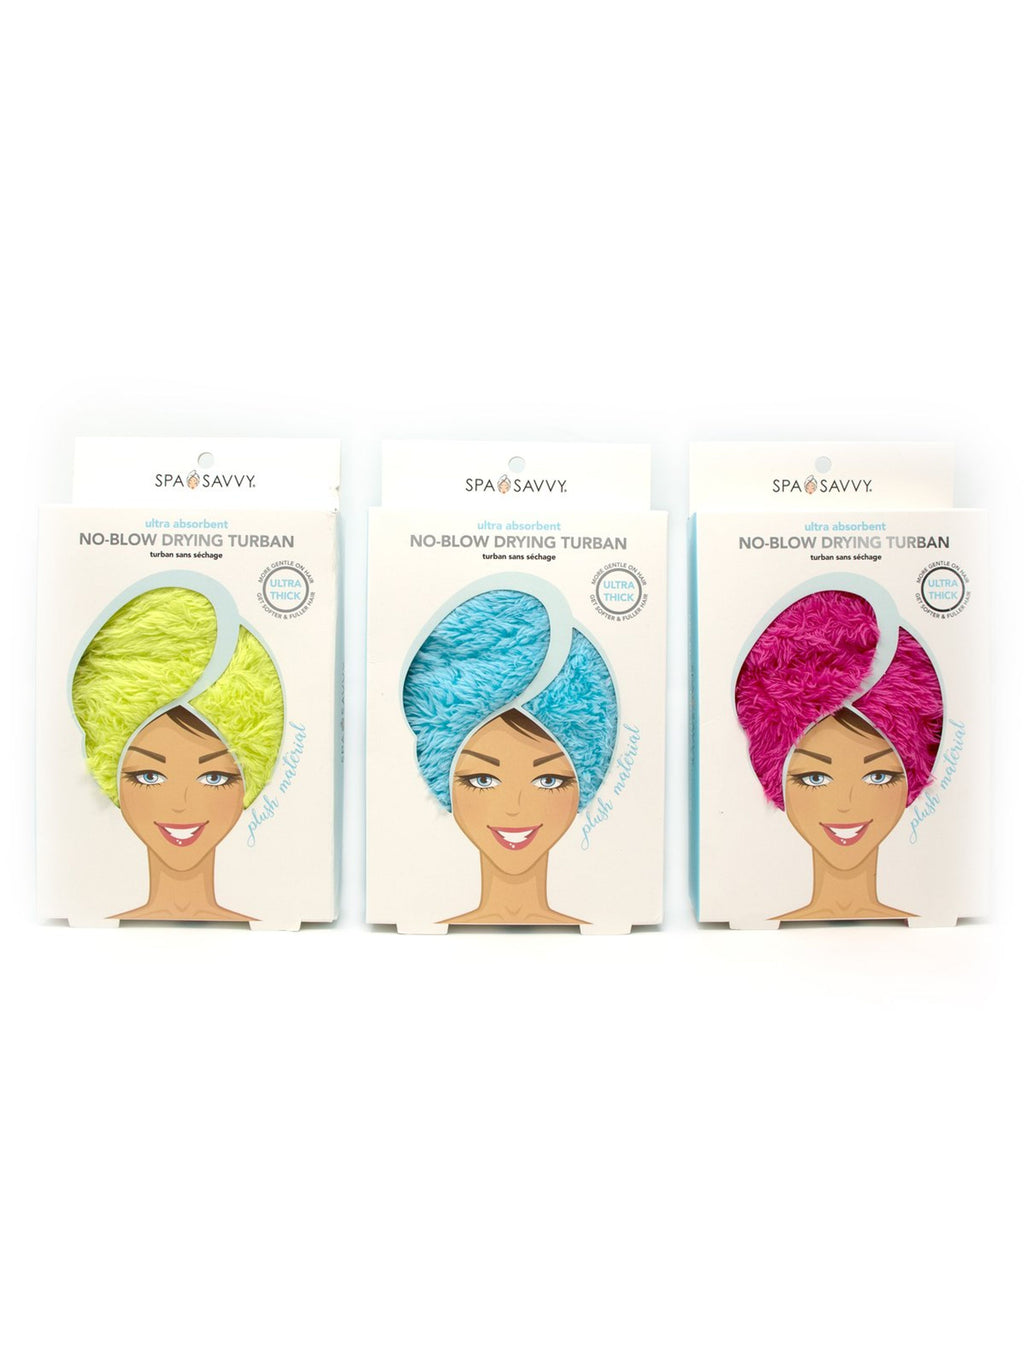 No-Blow Drying Turban